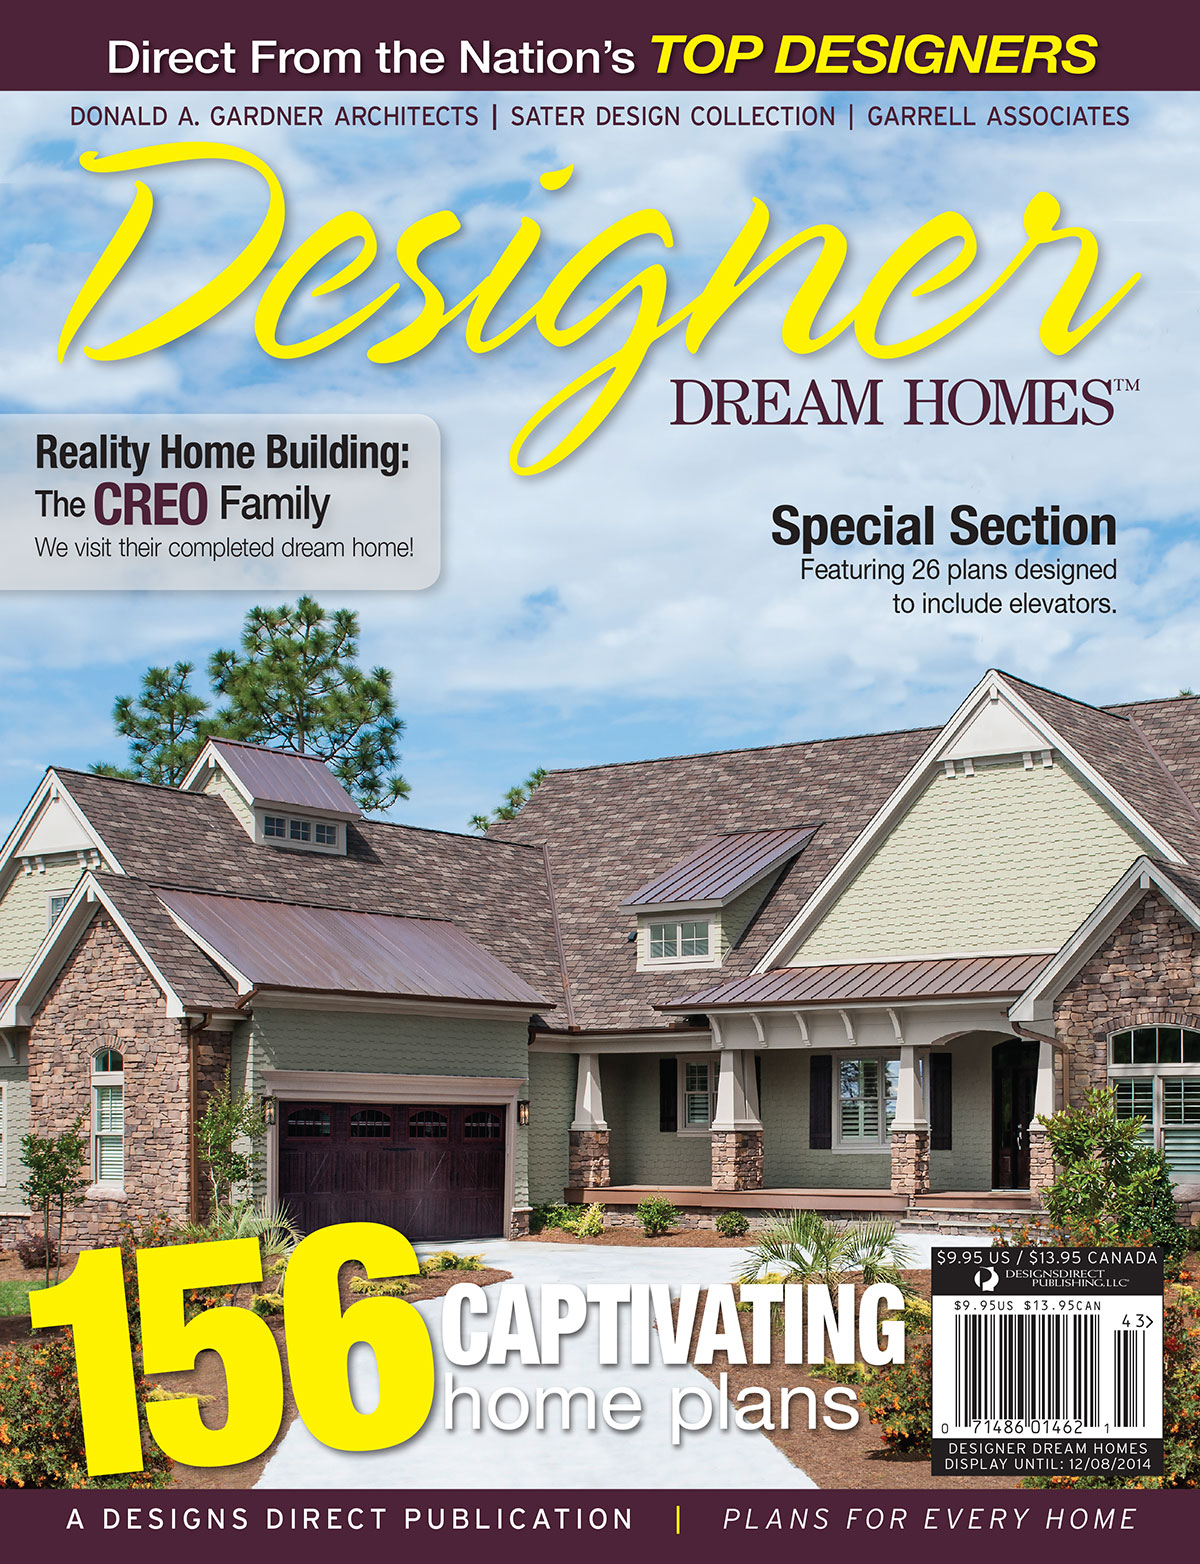 Designer Dream Homes Cover, Fall 2014, Featuring the Sagecrest Plan by Donald A. Gardner Architects